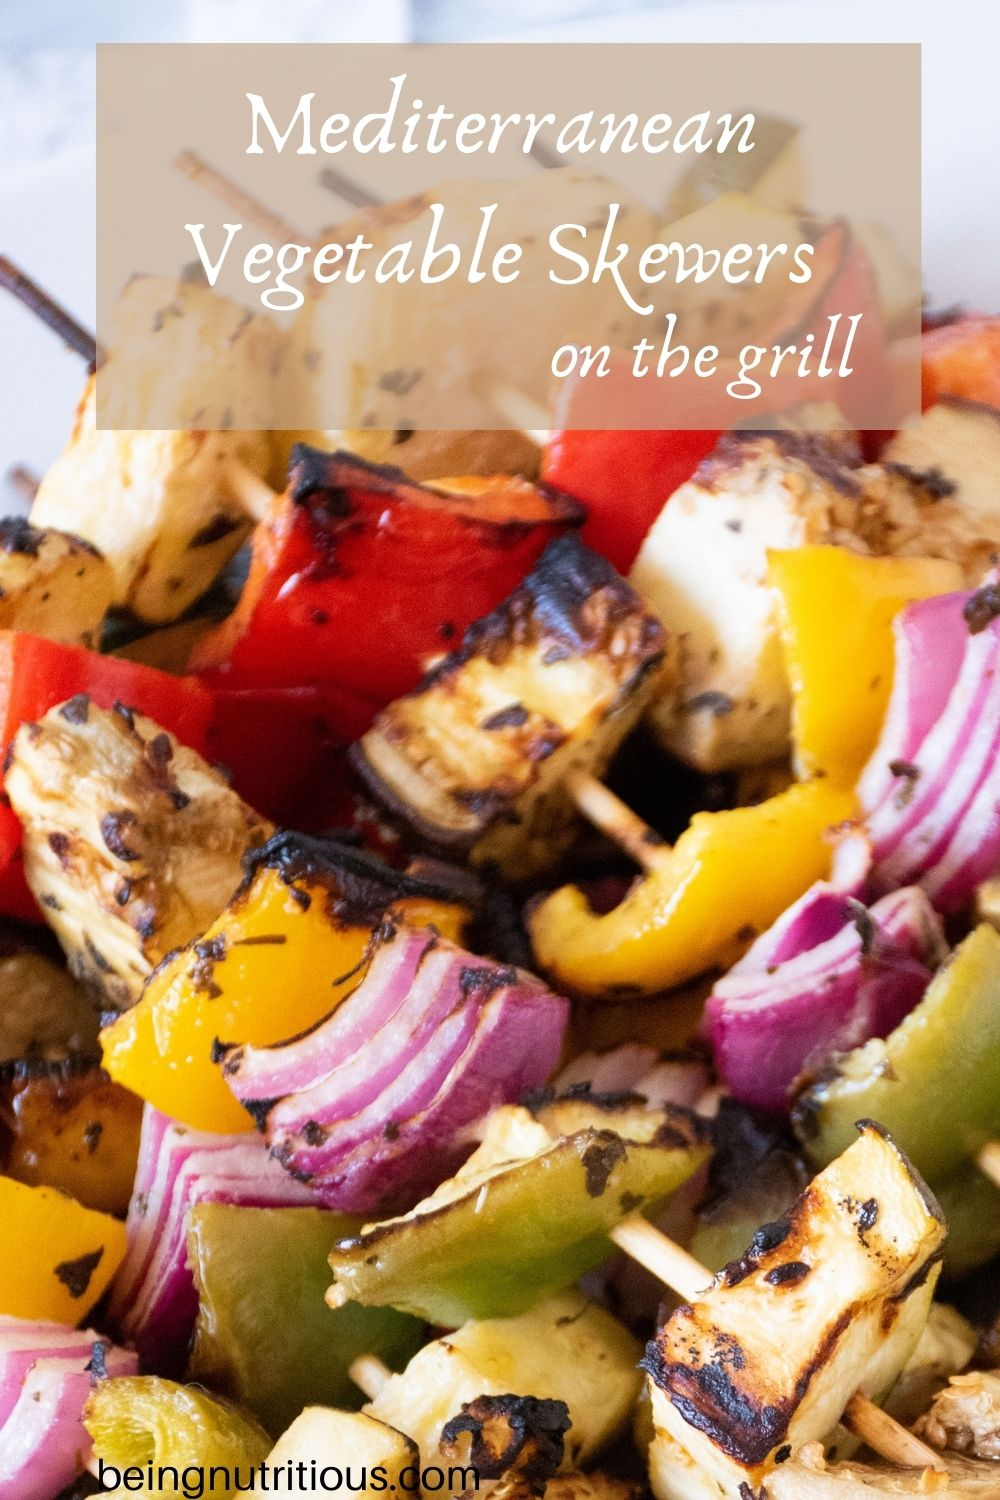 Close up of vegetable kabobs. Text overlay: Mediterranean Vegetable Skewers on the grill.